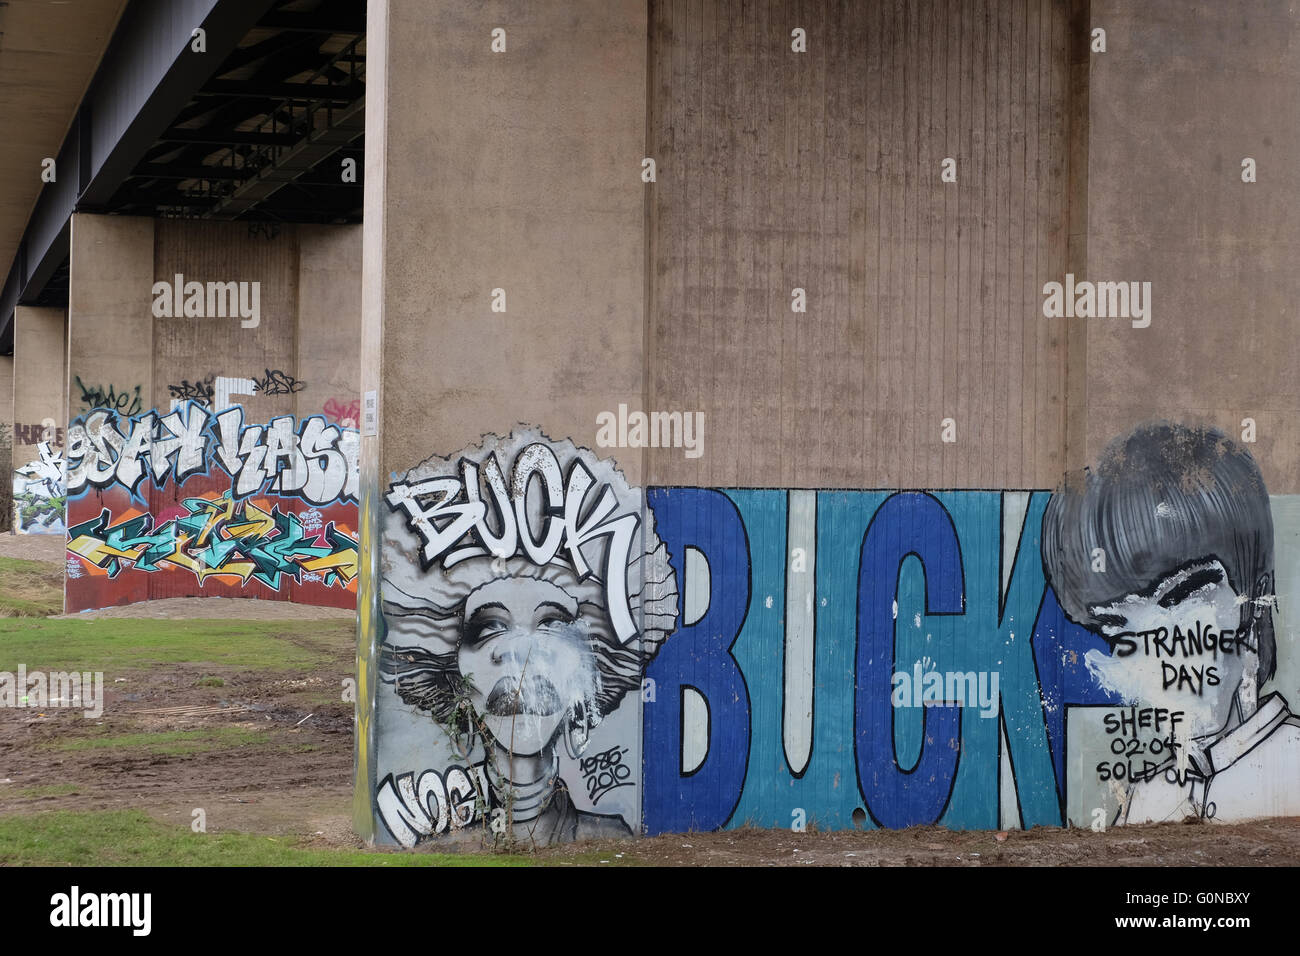 Graffiti on the piers of a concrete flyover - Stock Image